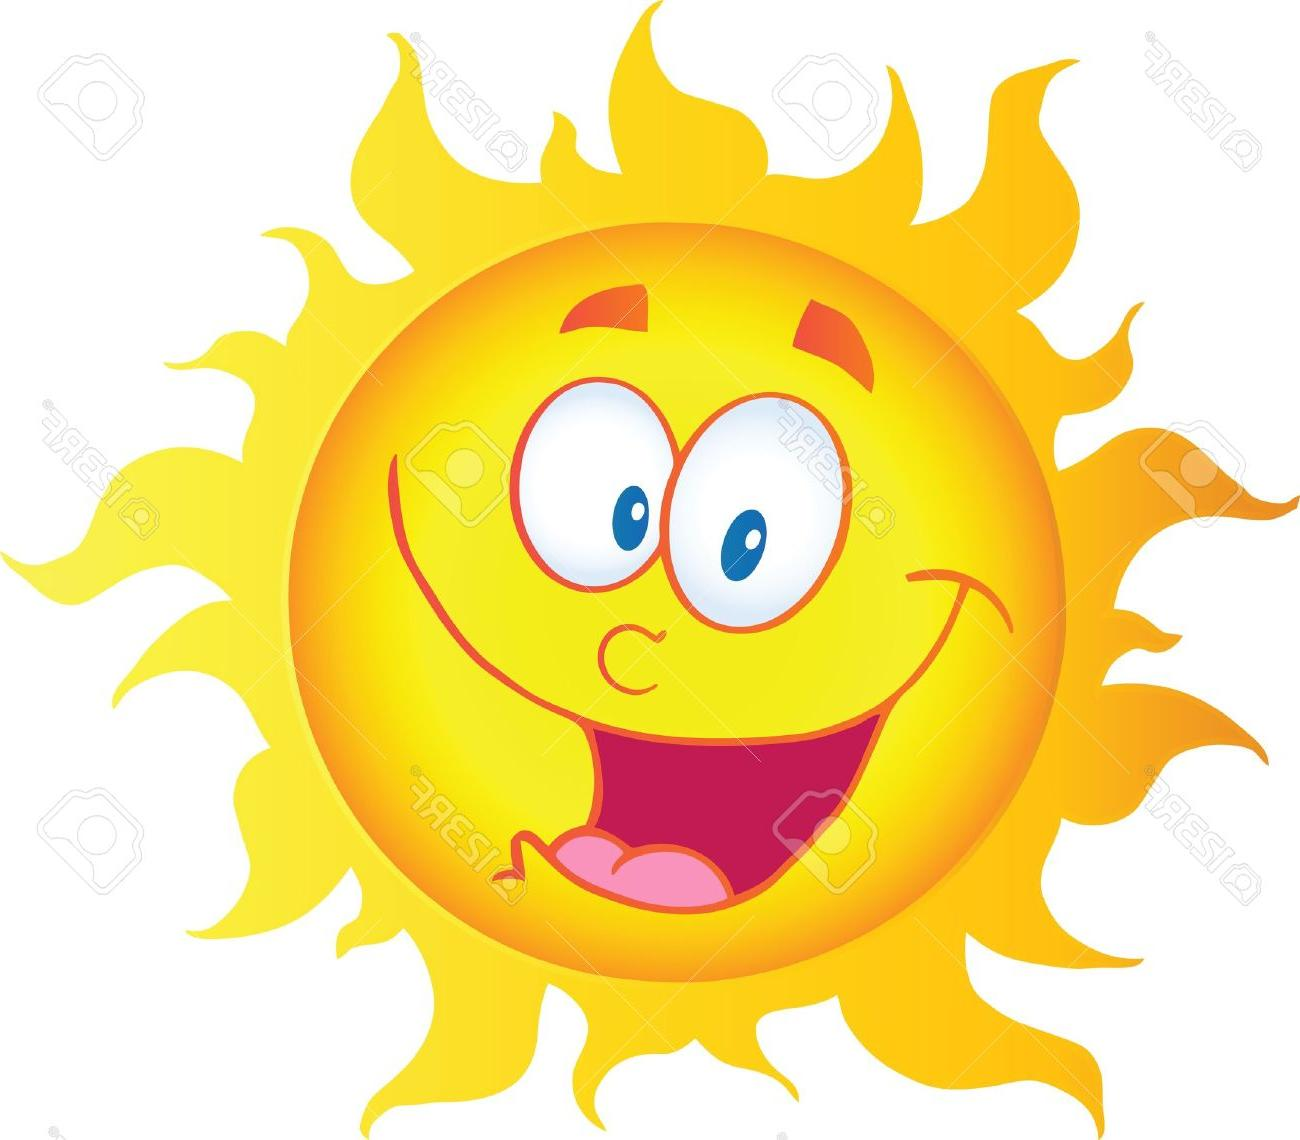 1300x1140 Best Free Sunshine Smiley Face Clip Art Vector Cdr Free Vector